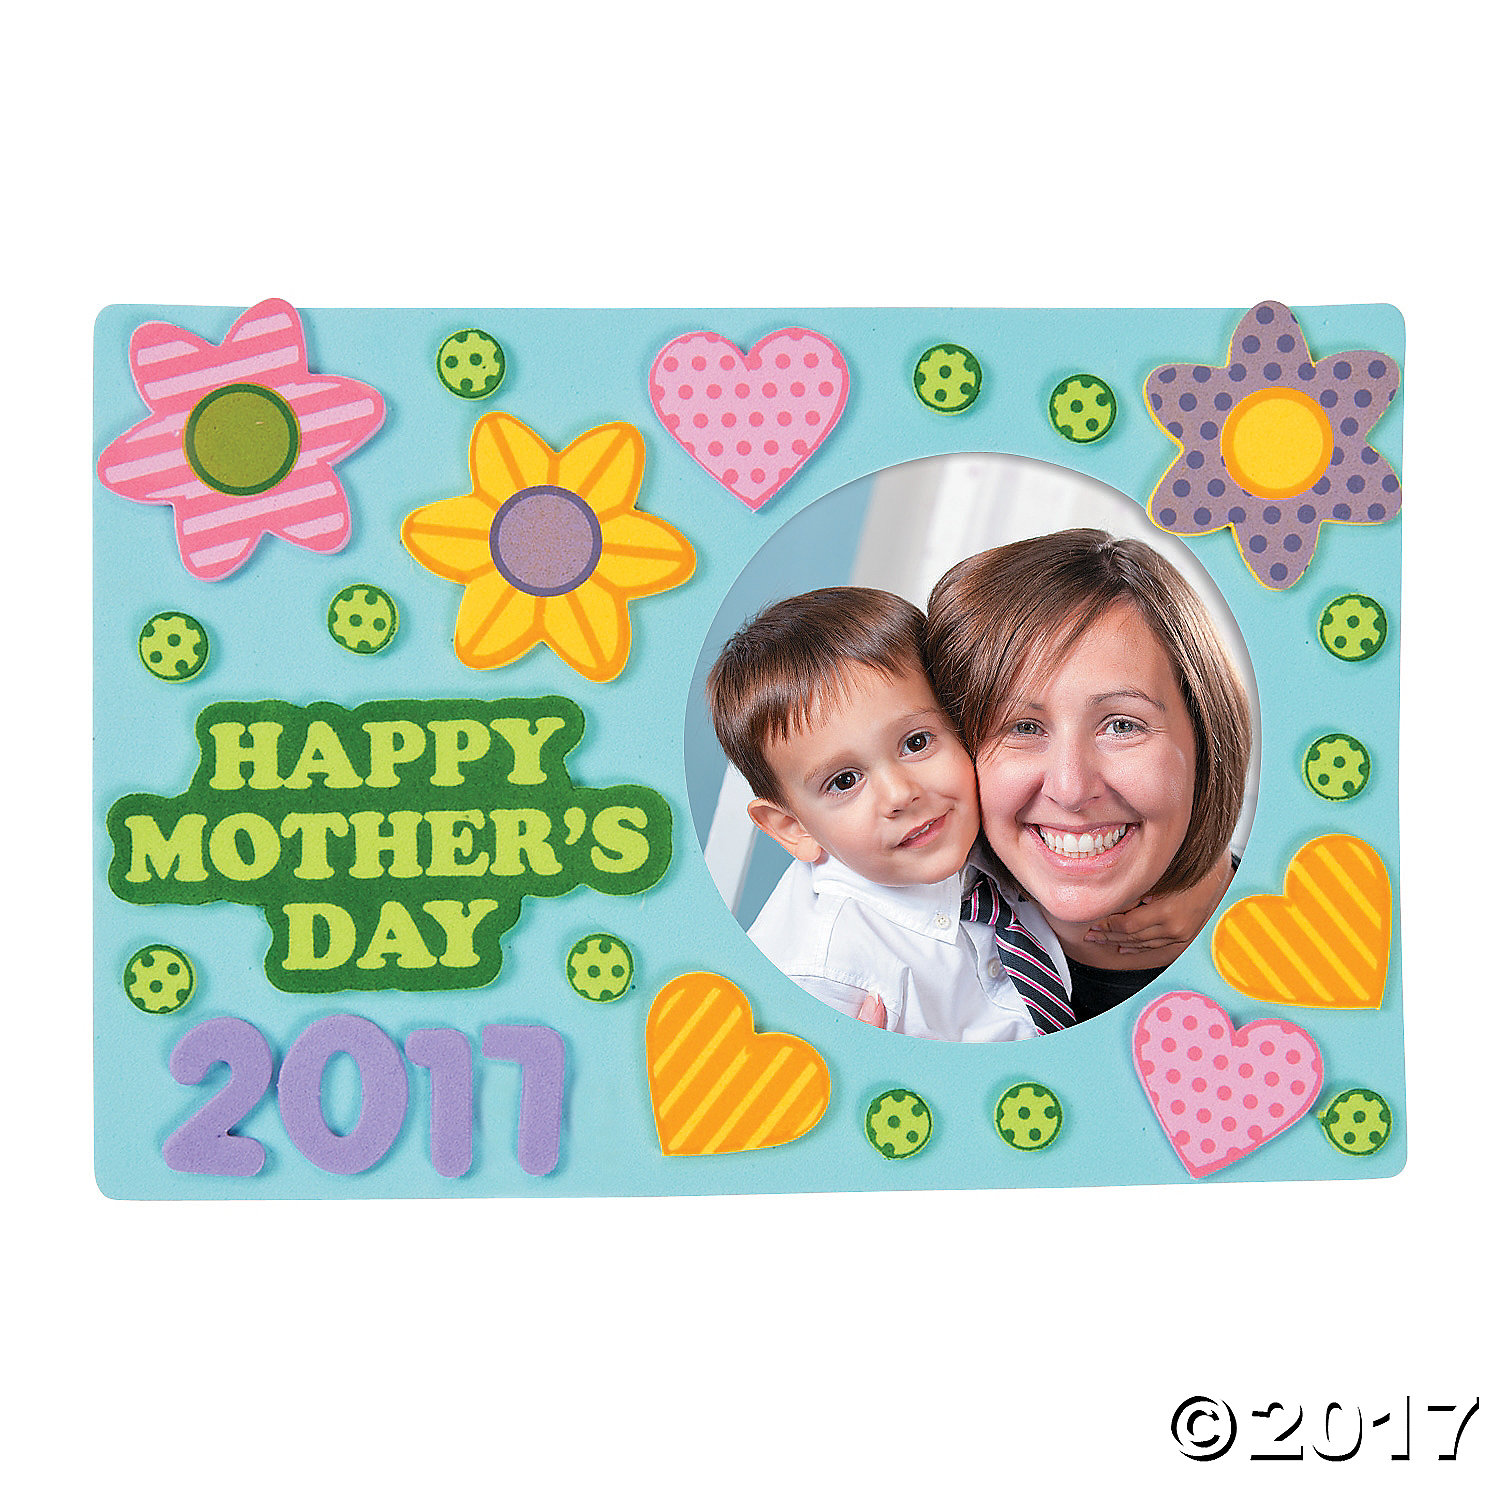 Happy Mother's Day Frame Craft Kit-12Pk